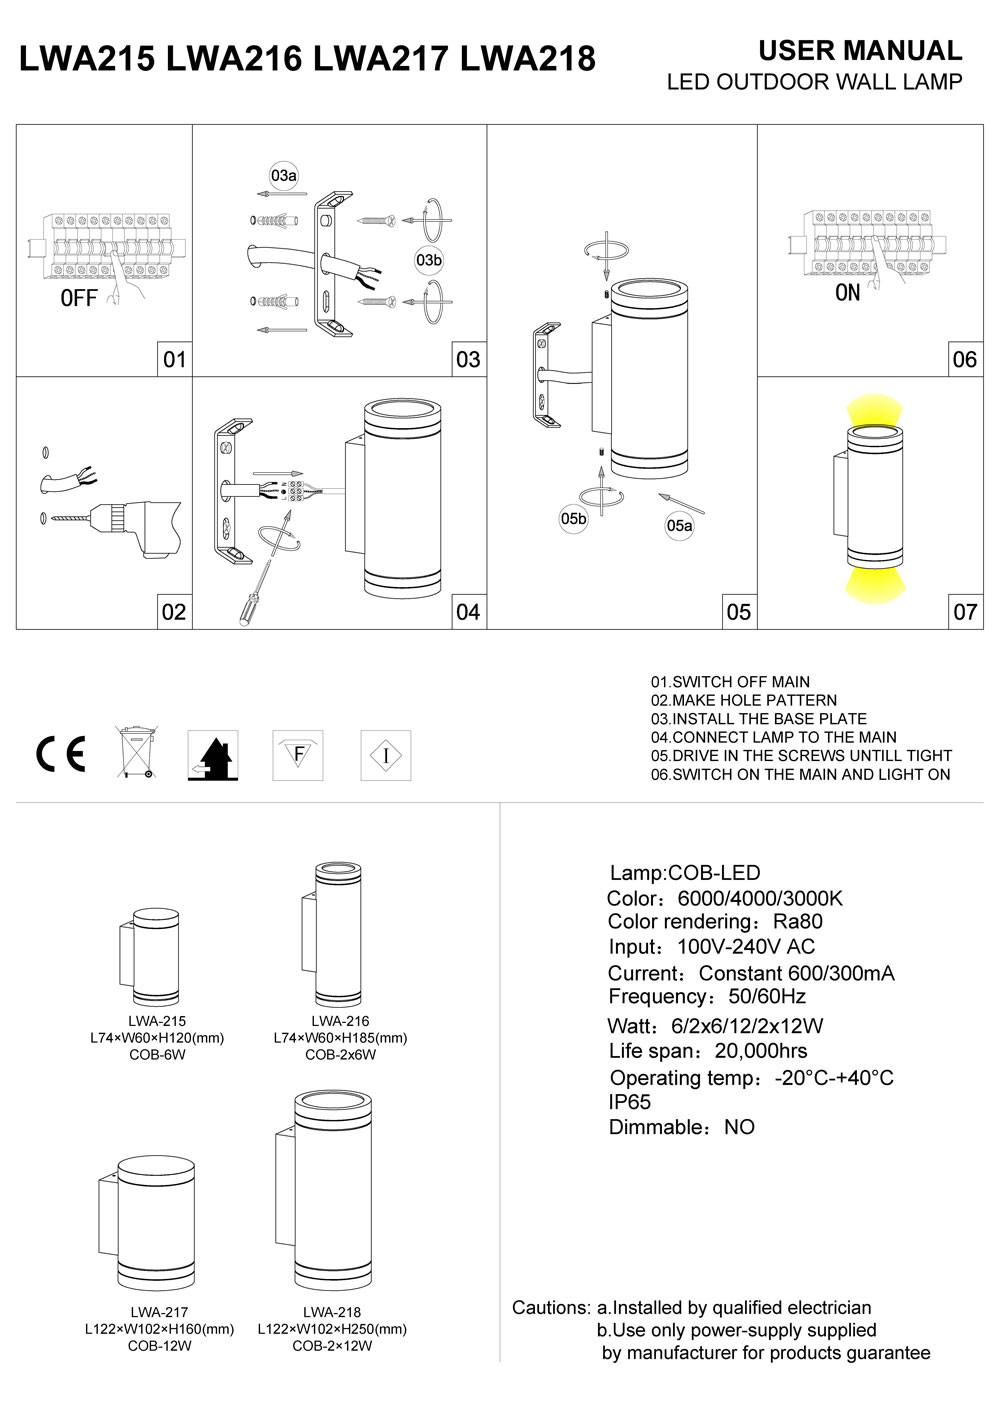 LWA215-LWA216-LWA217-LWA218 outdoor LED wall light installation guide